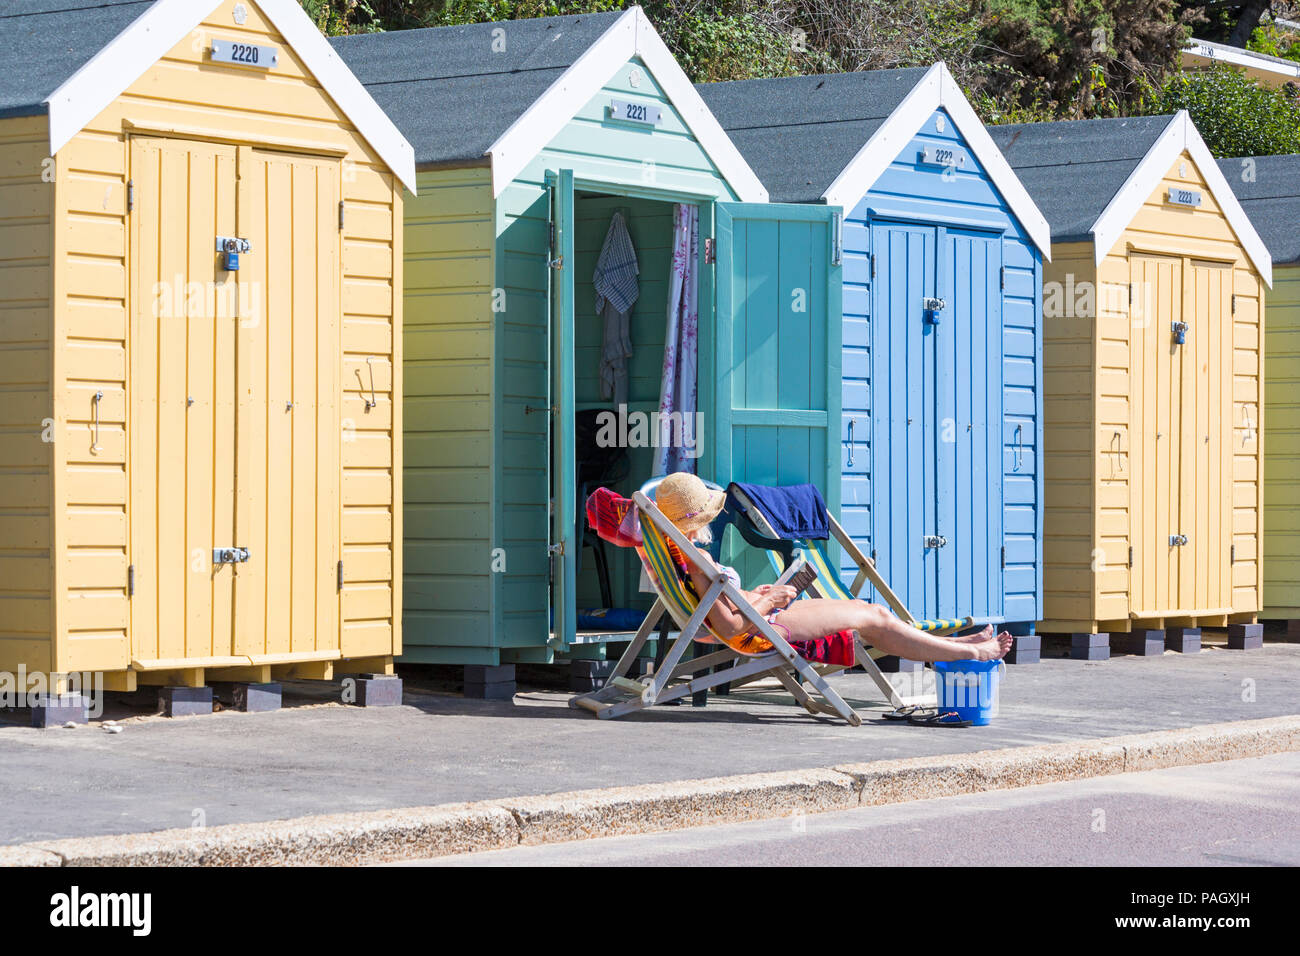 Bournemouth, Dorset, UK. 23rd July 2018. UK weather: the heatwave continues as temperatures rise on a scorching hot and sunny day at Bournemouth beaches with blue skies and unbroken sunshine. Sunseekers head to the seaside to soak up the sun. Woman sunbathing in deckchair reading a paperback book outside beach huts with feet up on bucket. Credit: Carolyn Jenkins/Alamy Live News - Stock Image